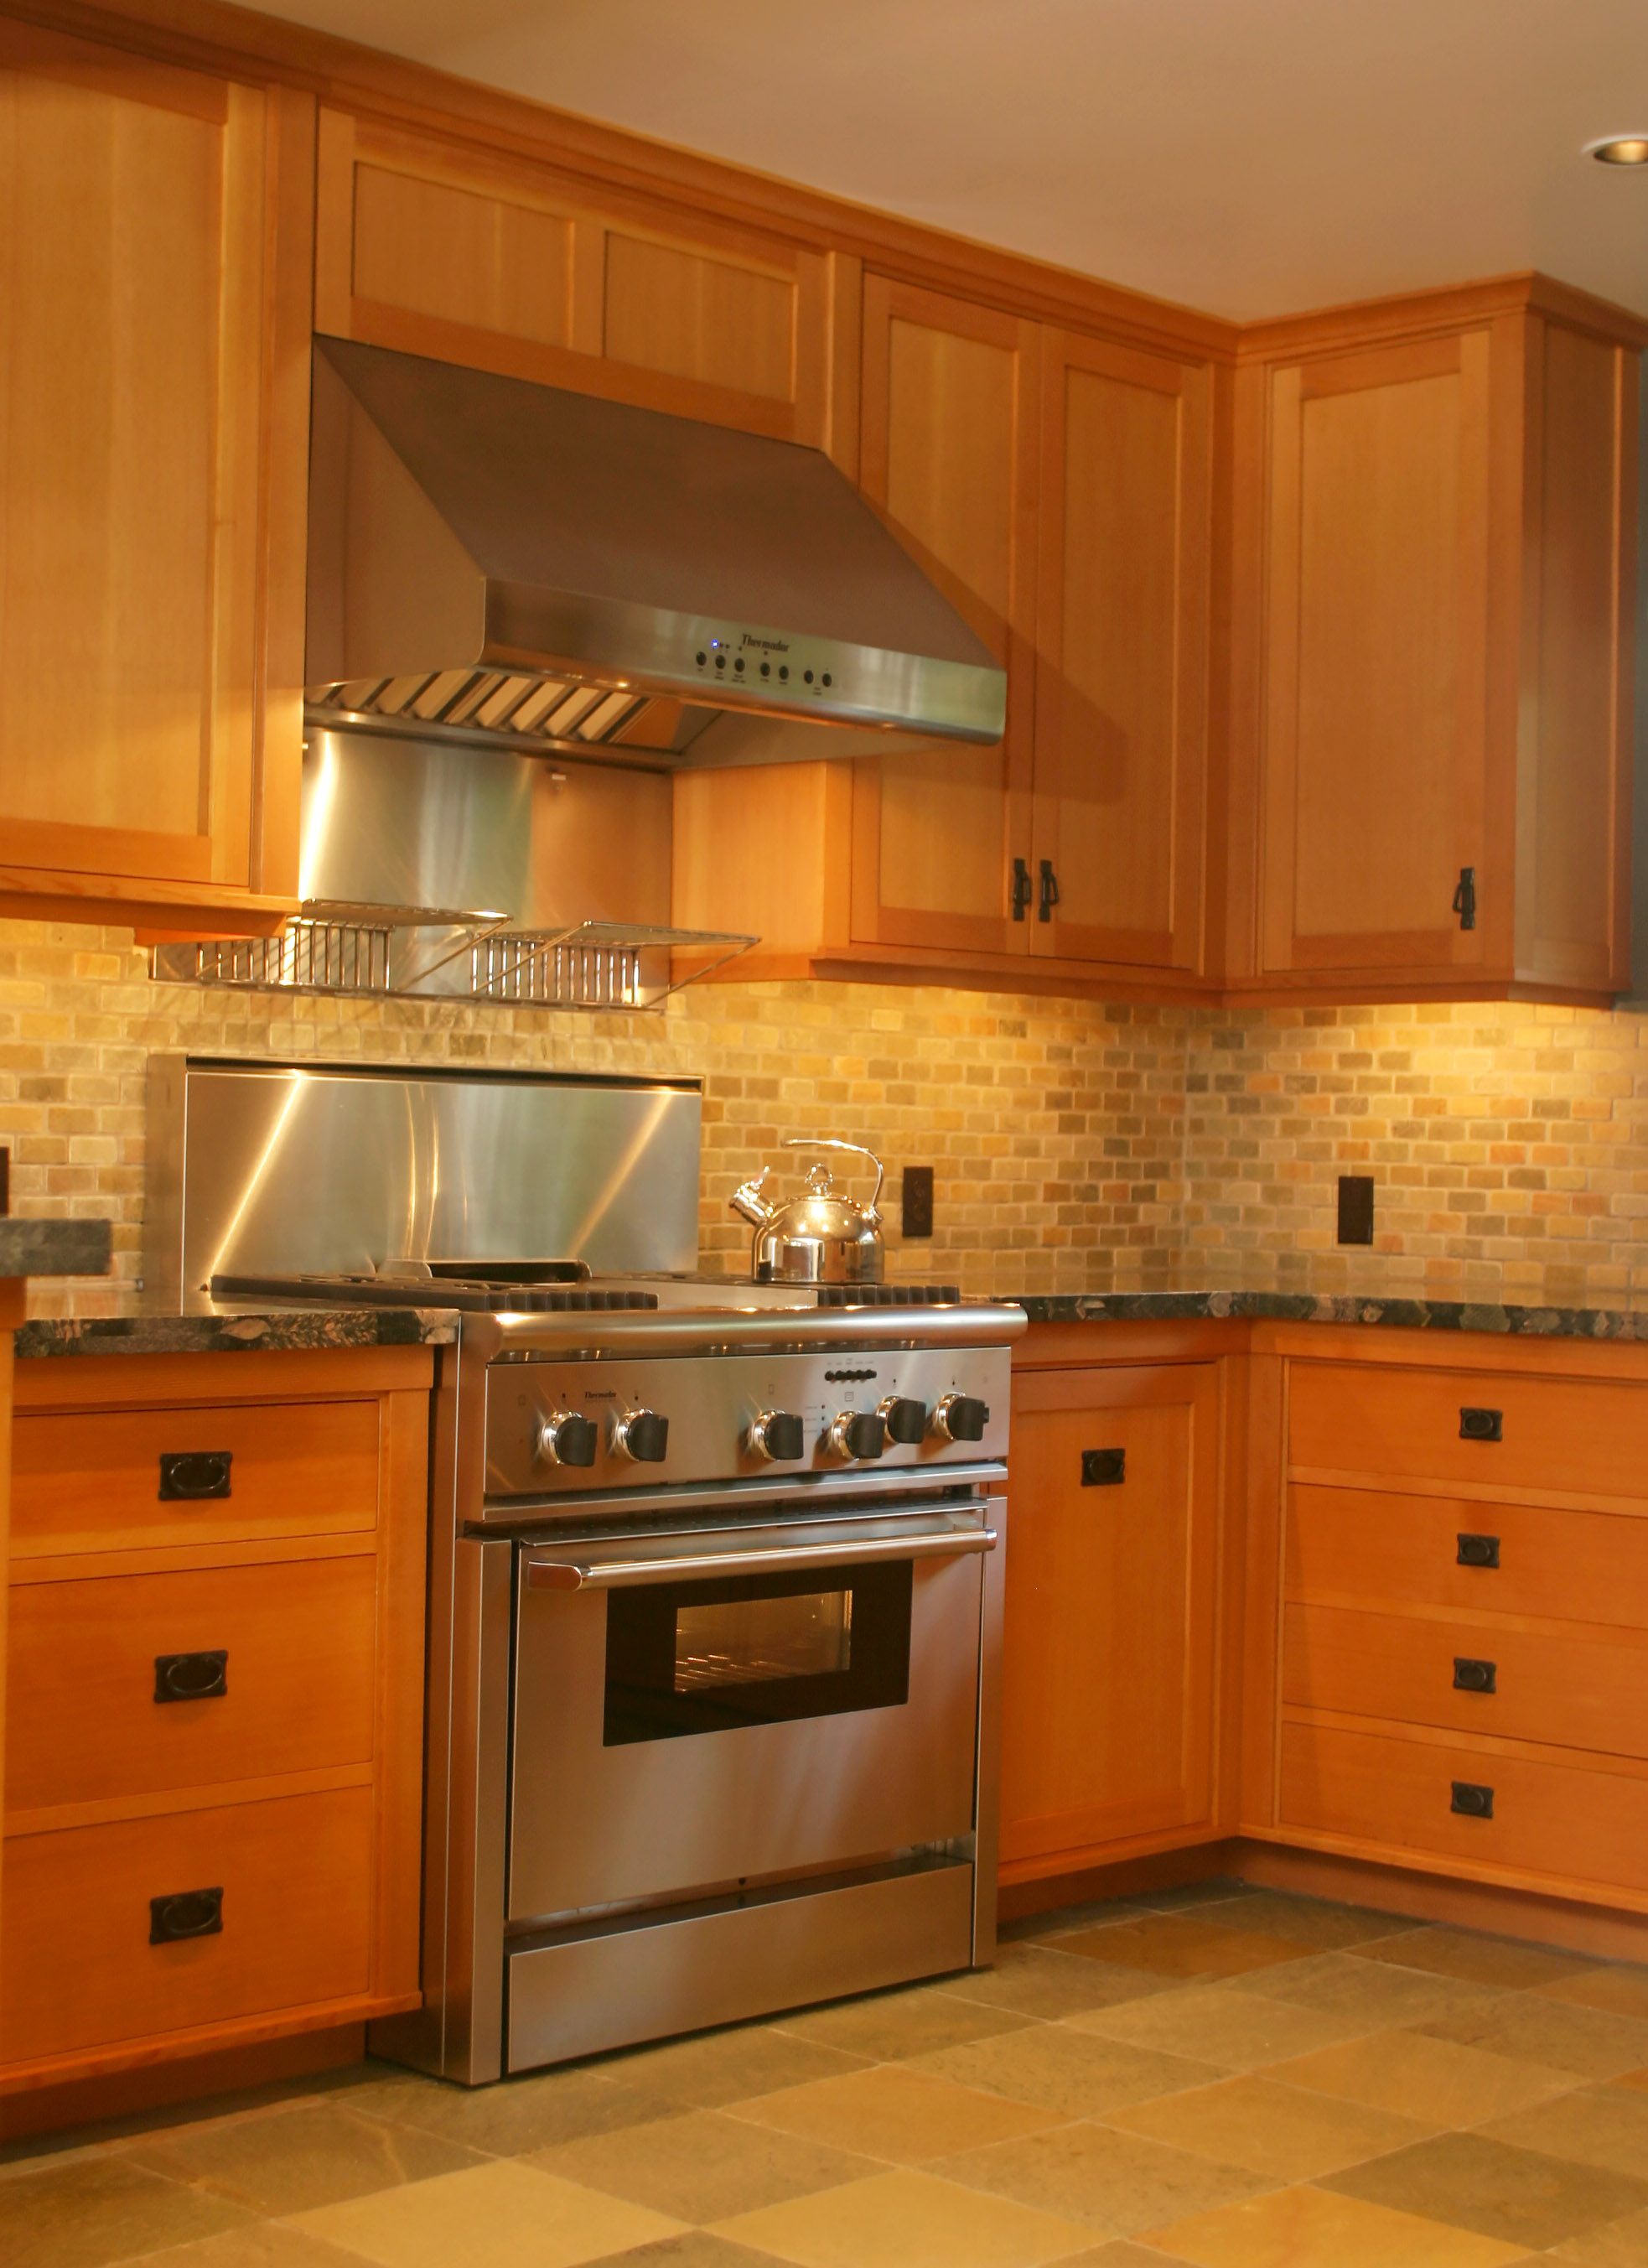 Honore-Cabinetry-custom-kitchen-douglas-fir-art-crafts-2.jpg